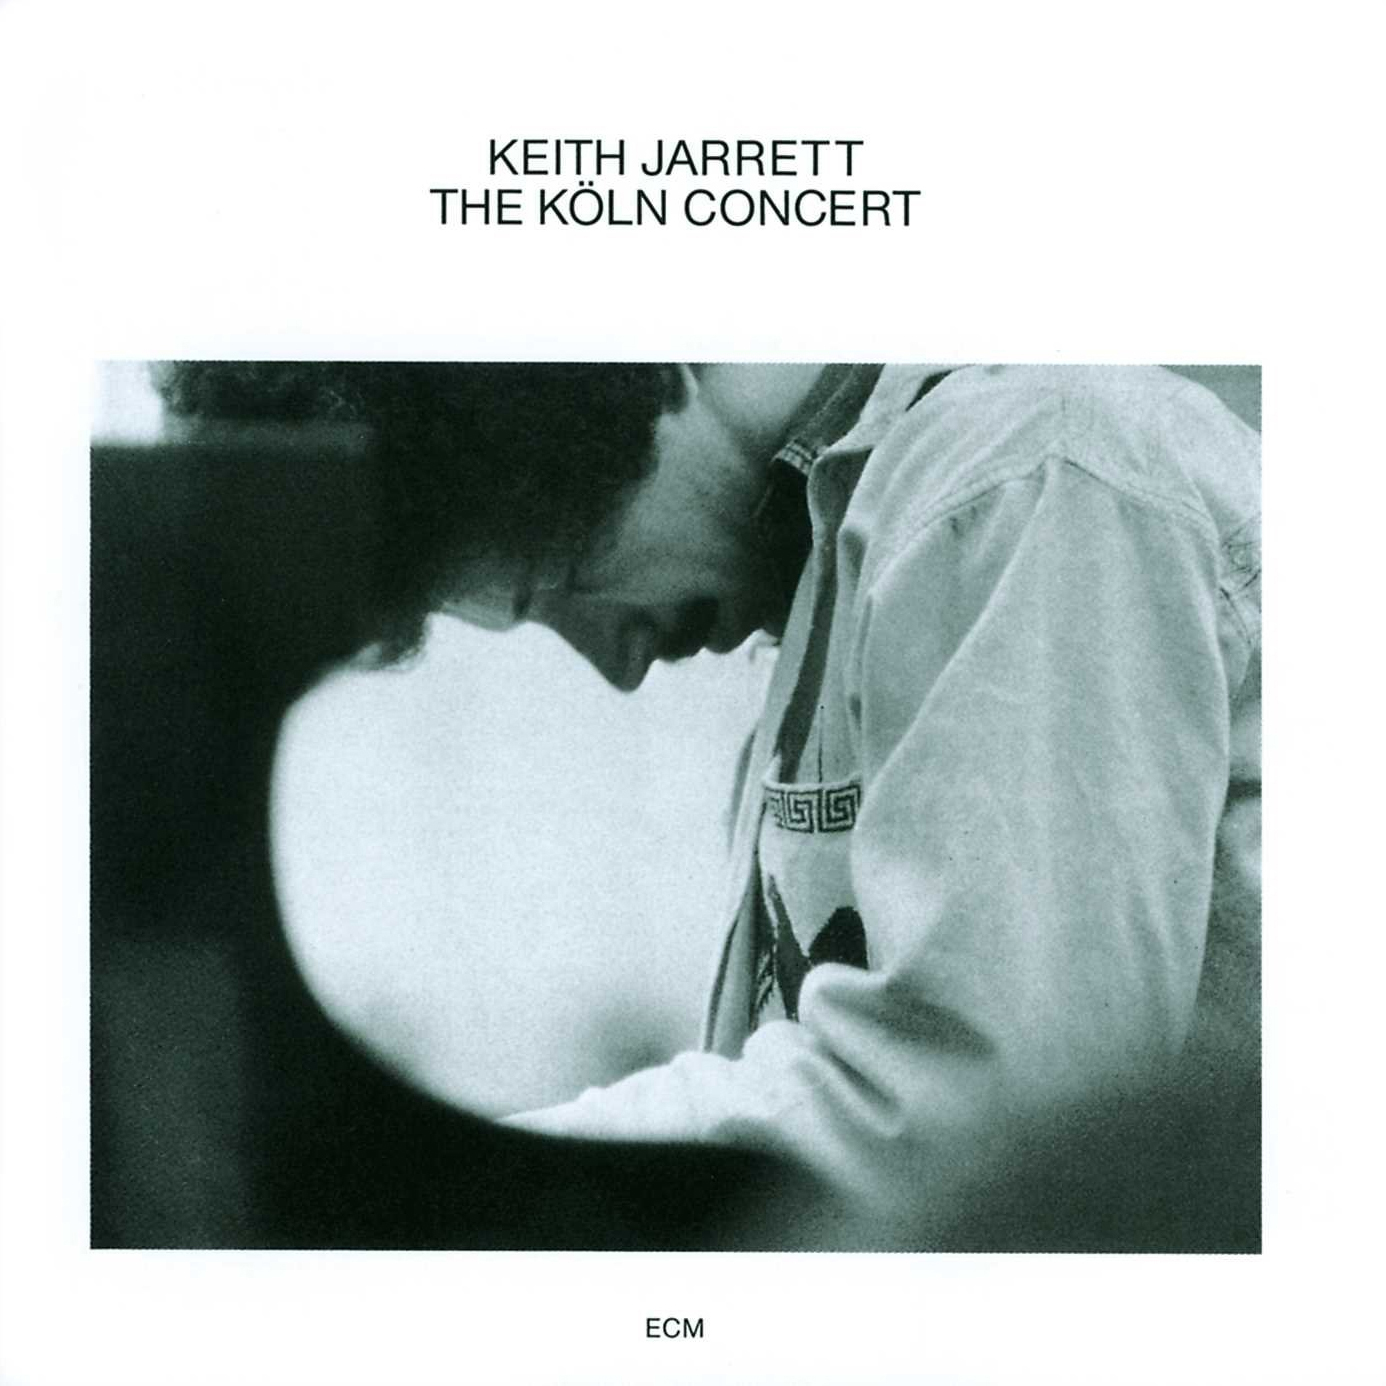 Keith Jarrett The Koln Concert Japanese Import SHM-SACD